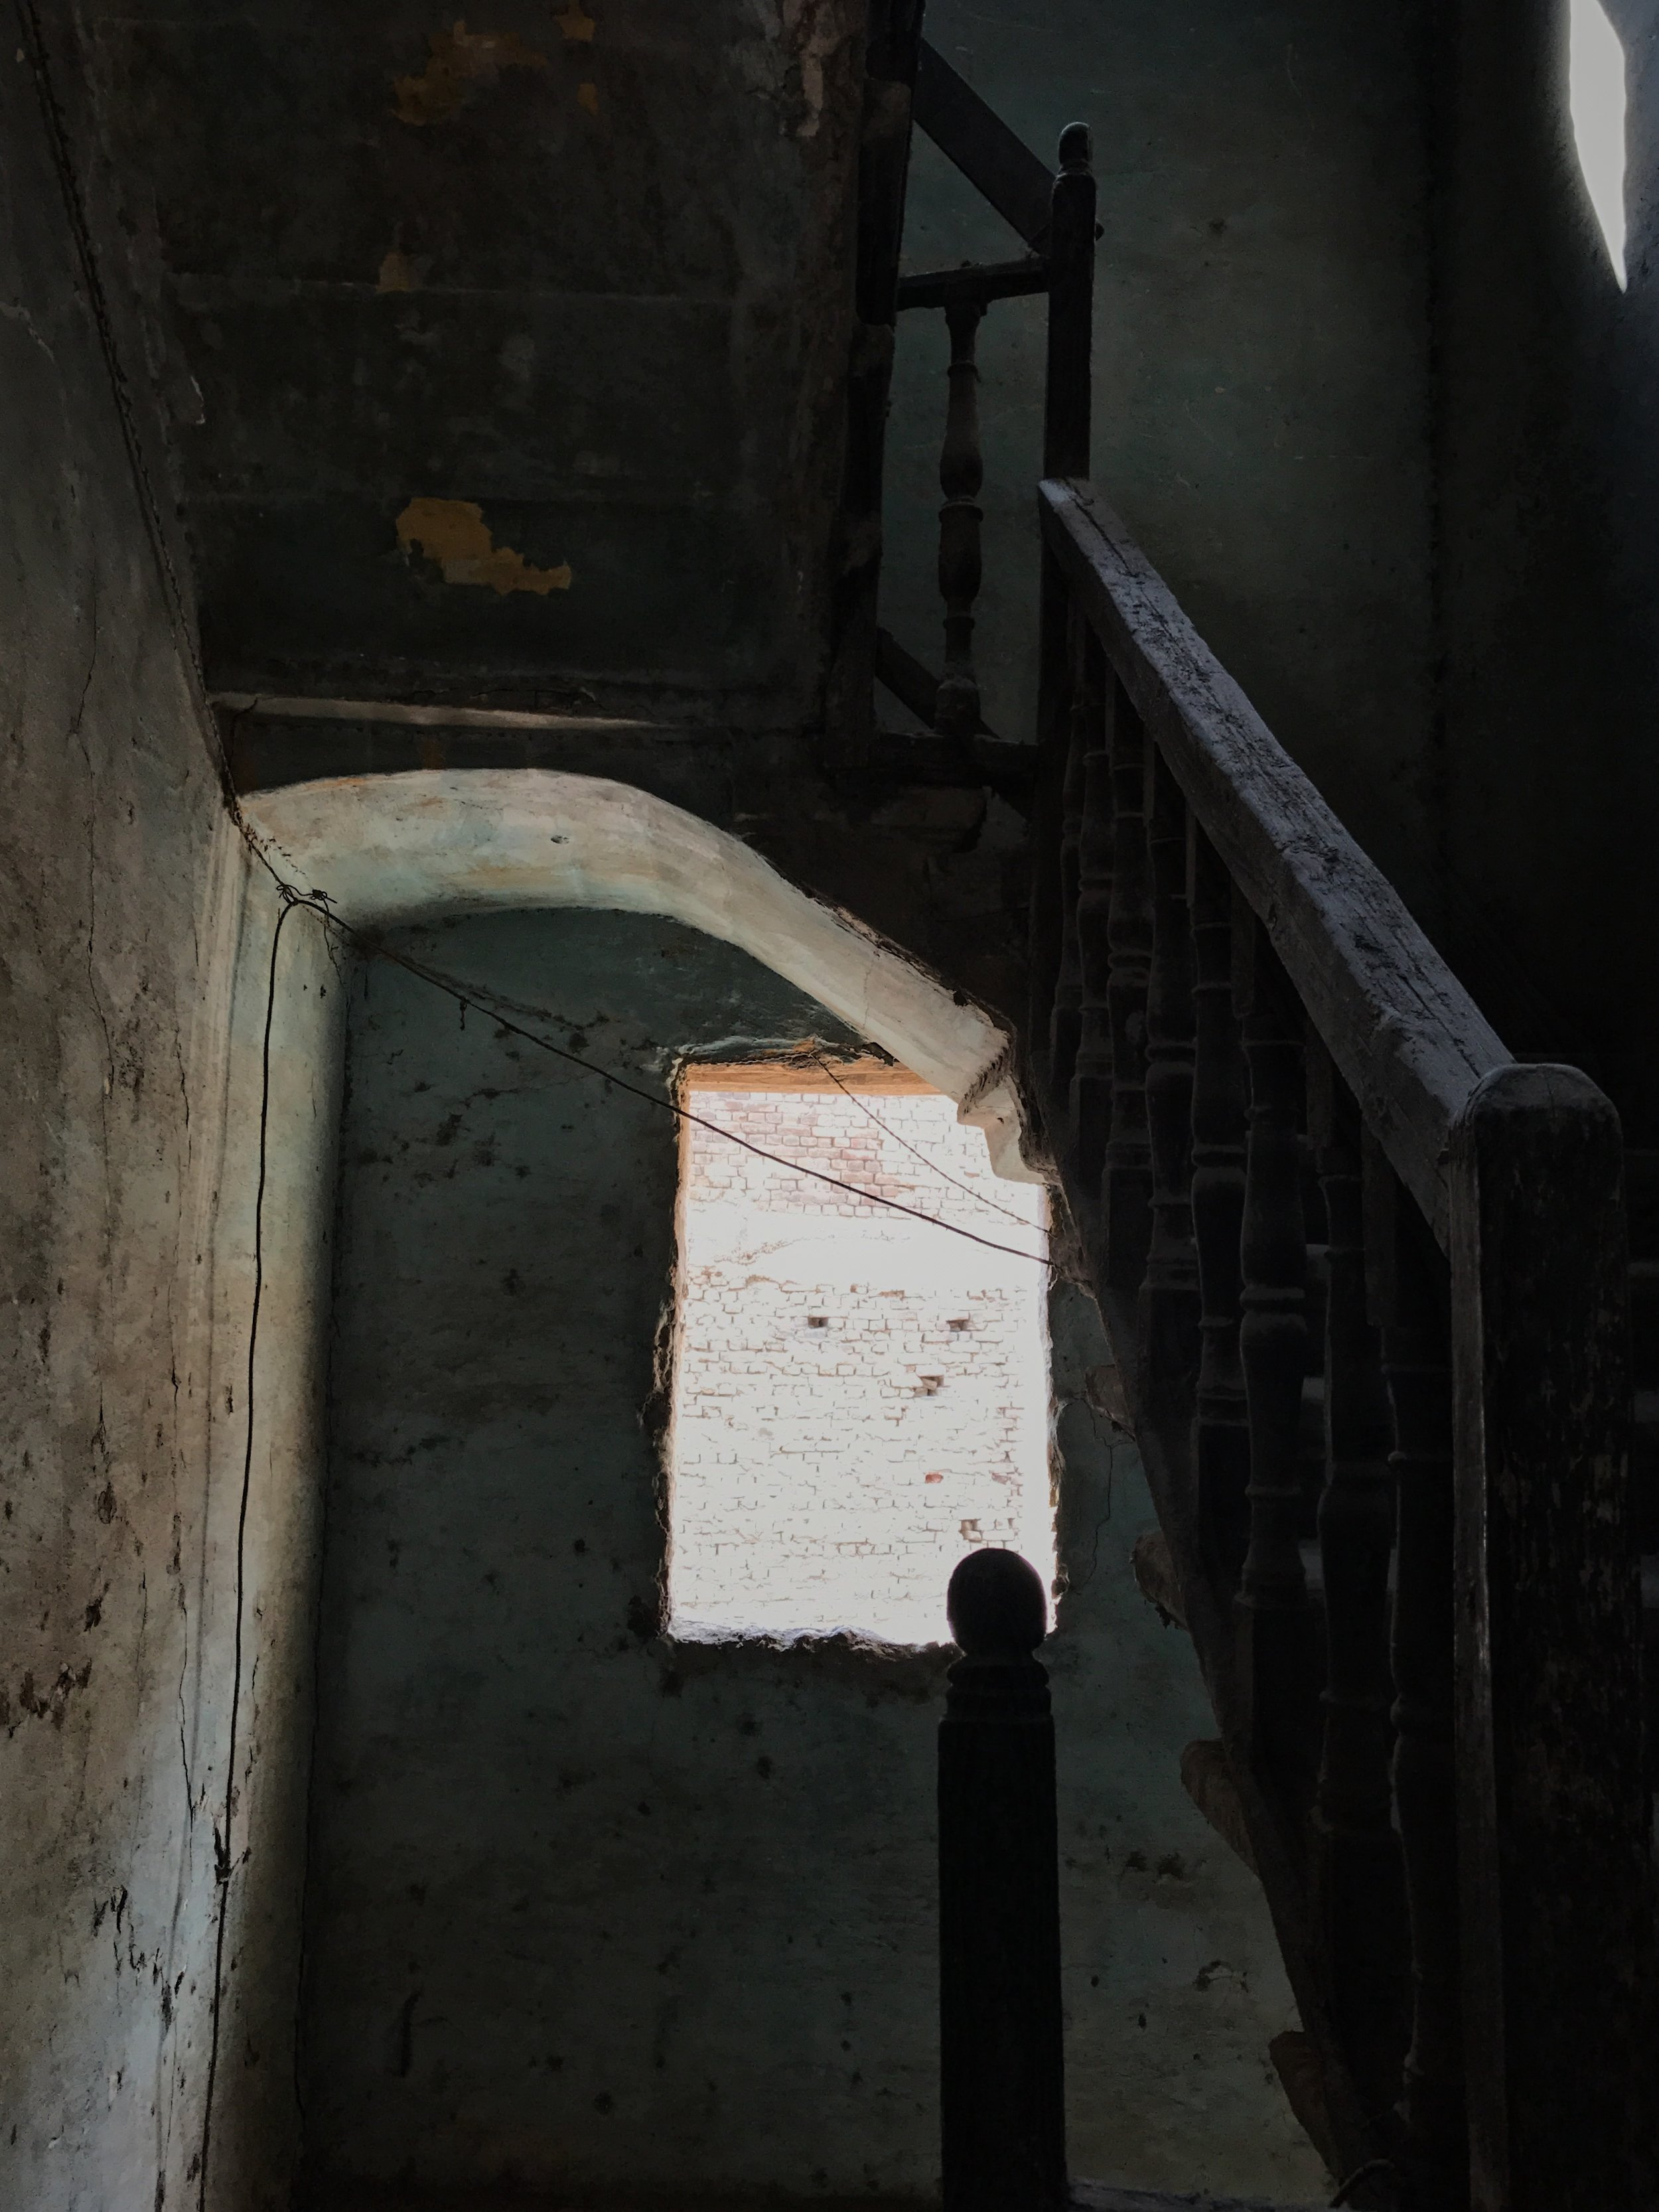 A shot of people escaping a fire...fleeing with their life and taking what their hands can only grasp... leaving behind a lifetime of memories.  Going up the aged stairs that can barley hold the burden of itself let alone trying to hold burdens of others...